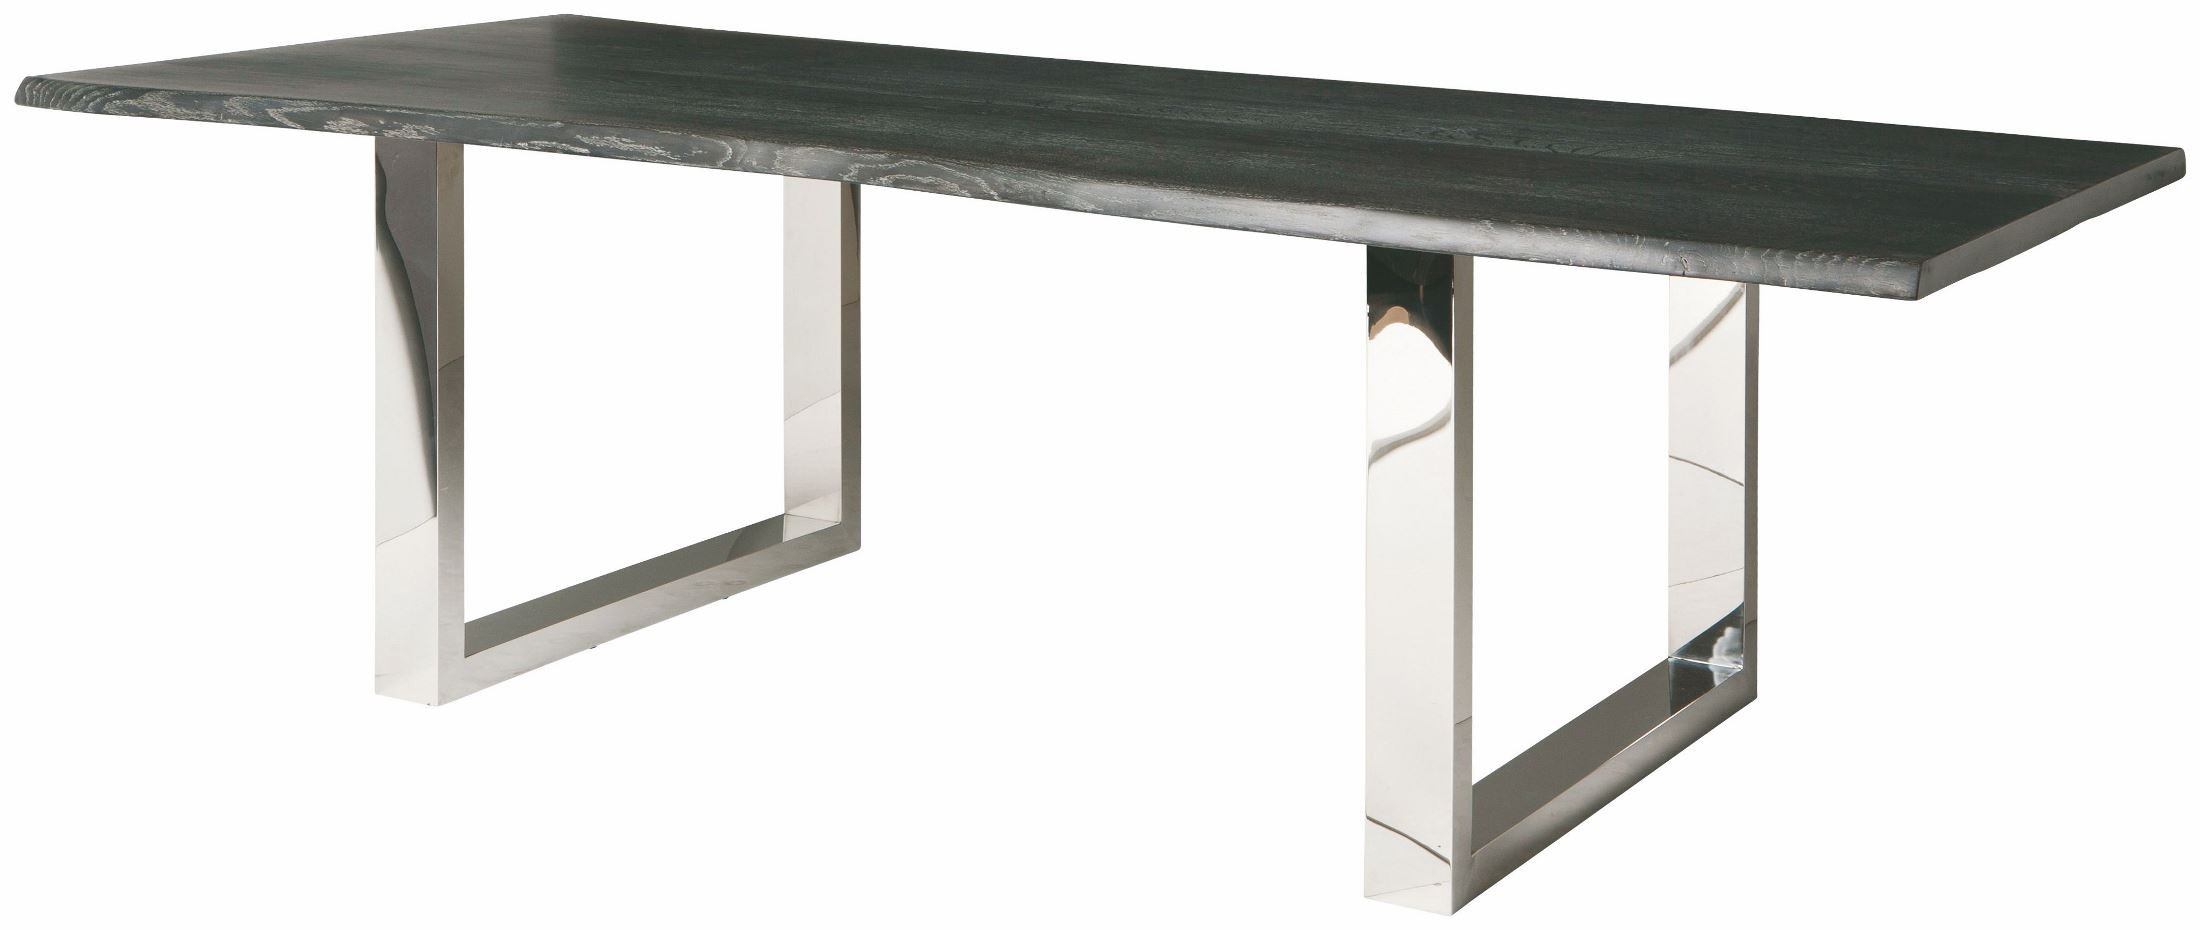 Lyon 78 Quot Oxidized Grey Wood Rectangular Dining Table From